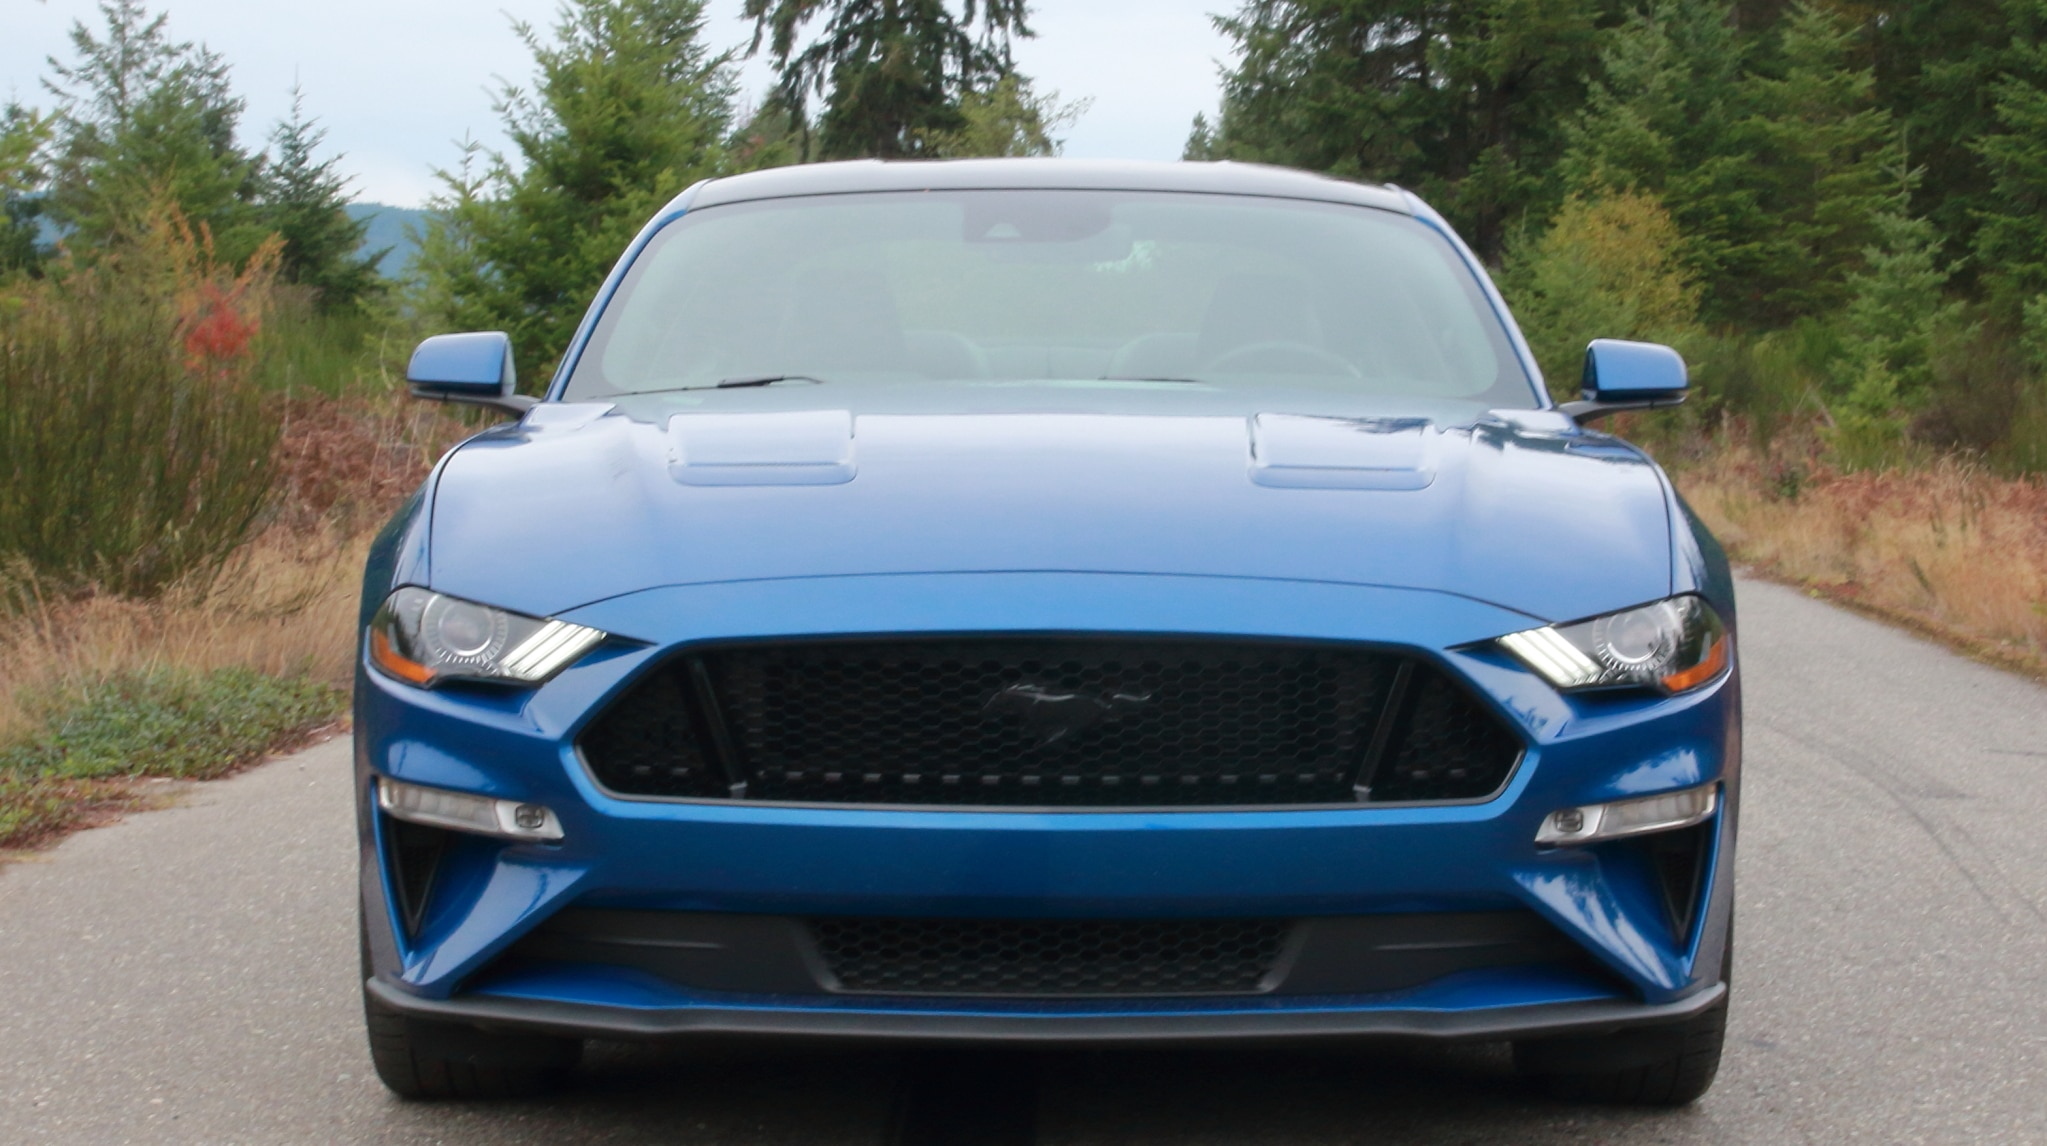 2018_ford_mustang_gt_front_view